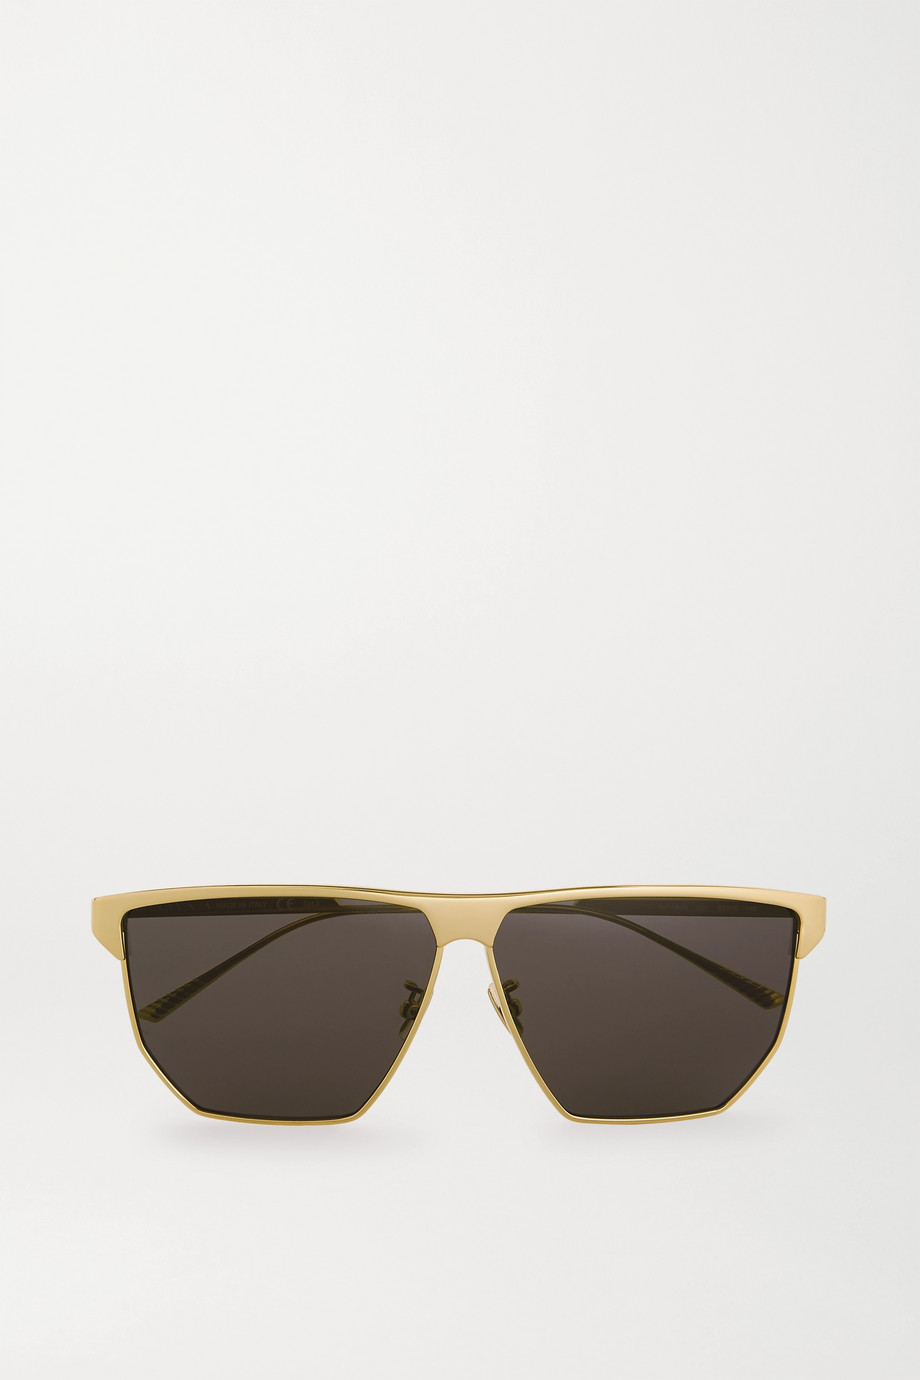 Bottega Veneta D-frame gold-tone metal sunglasses